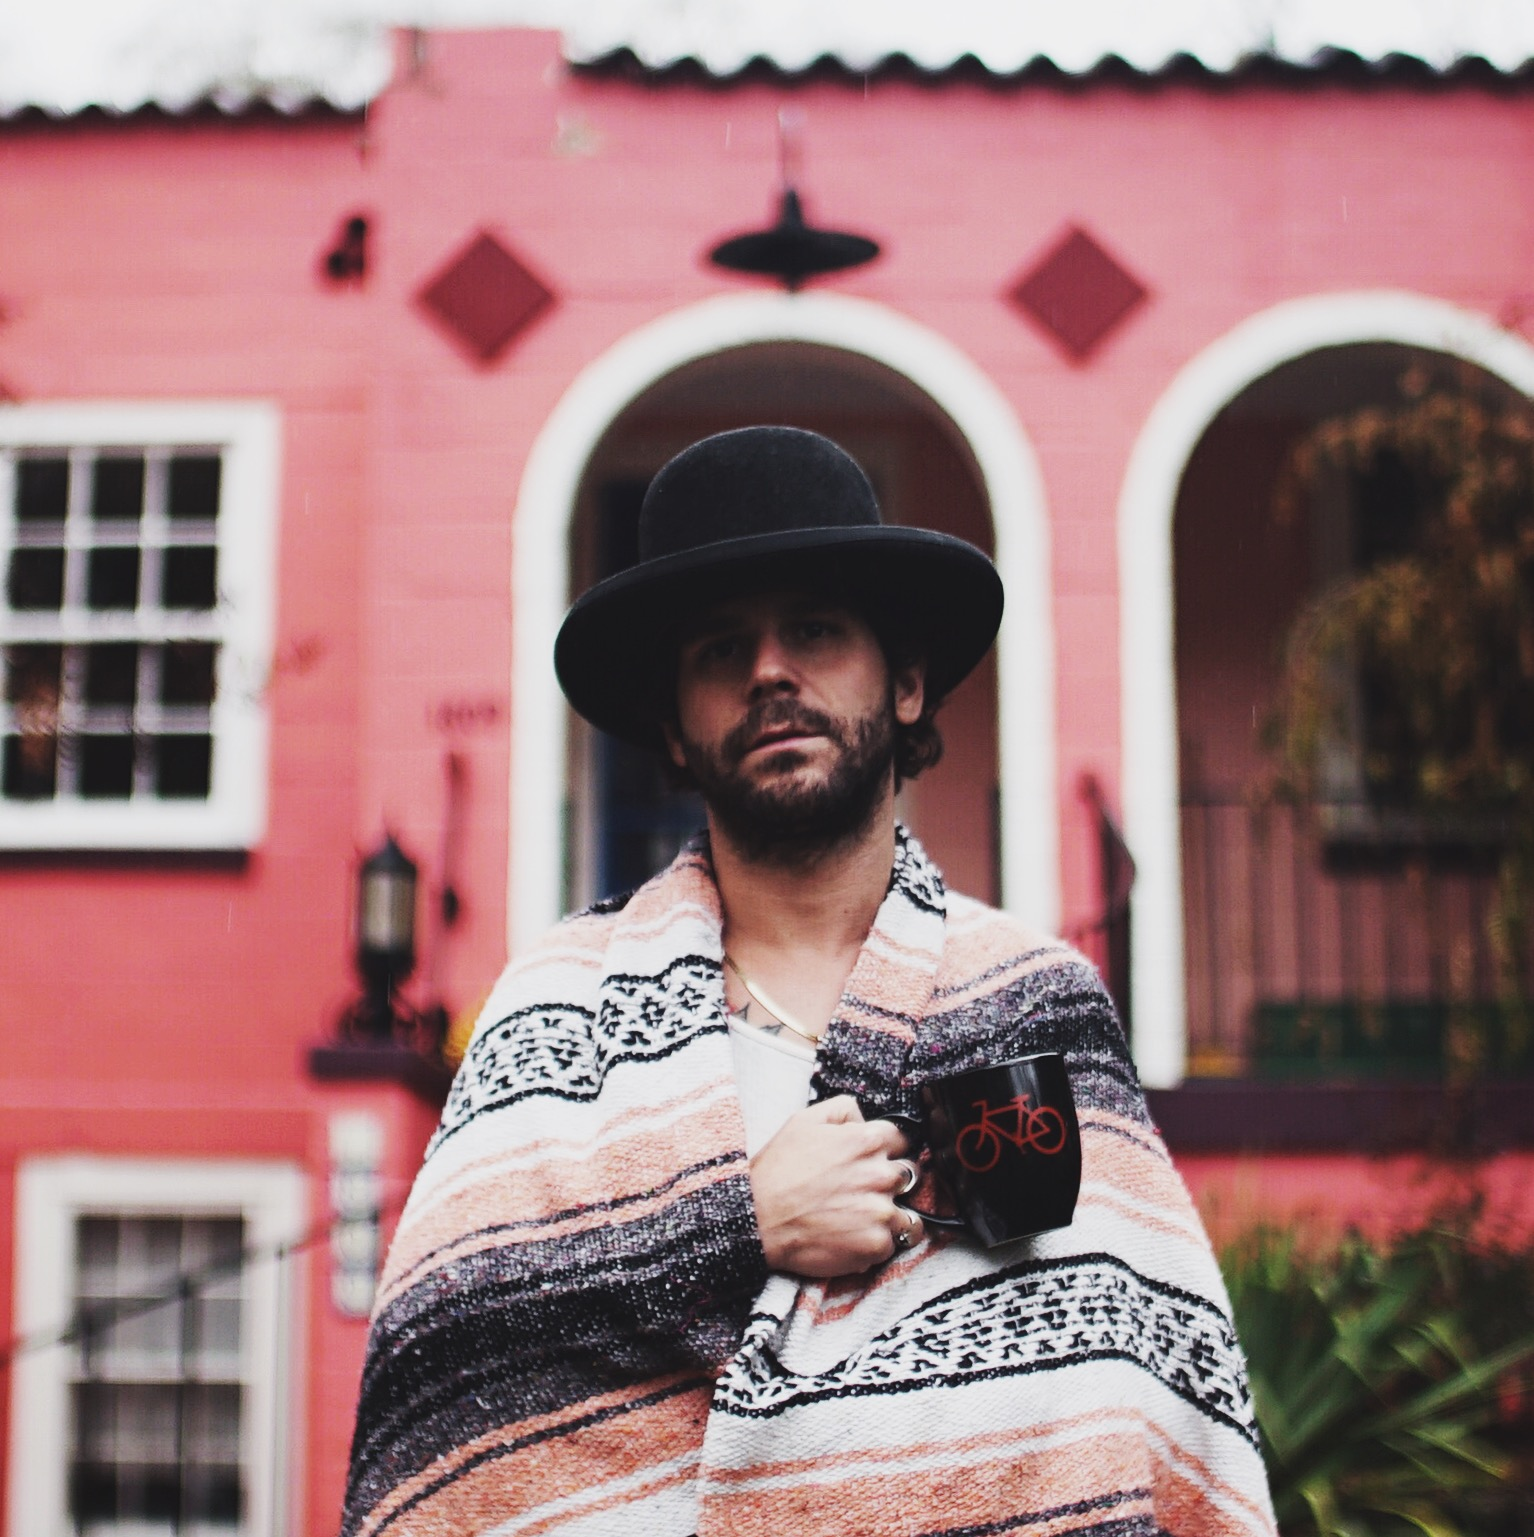 Coming Home to Myself: A Conversation With Langhorne Slim